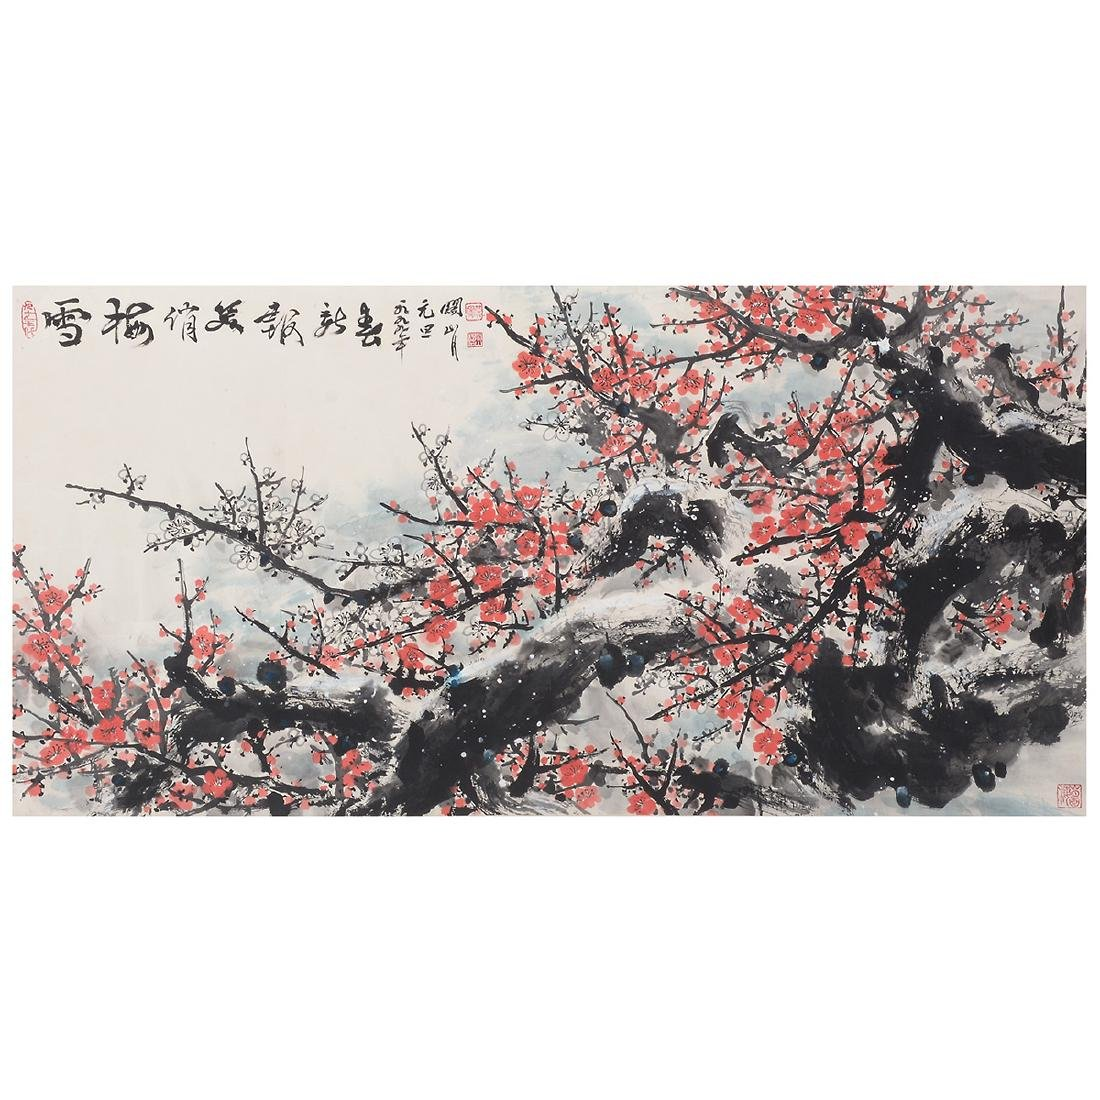 Manner of Guan Shanyue (1912-2000): Plum Blossoms